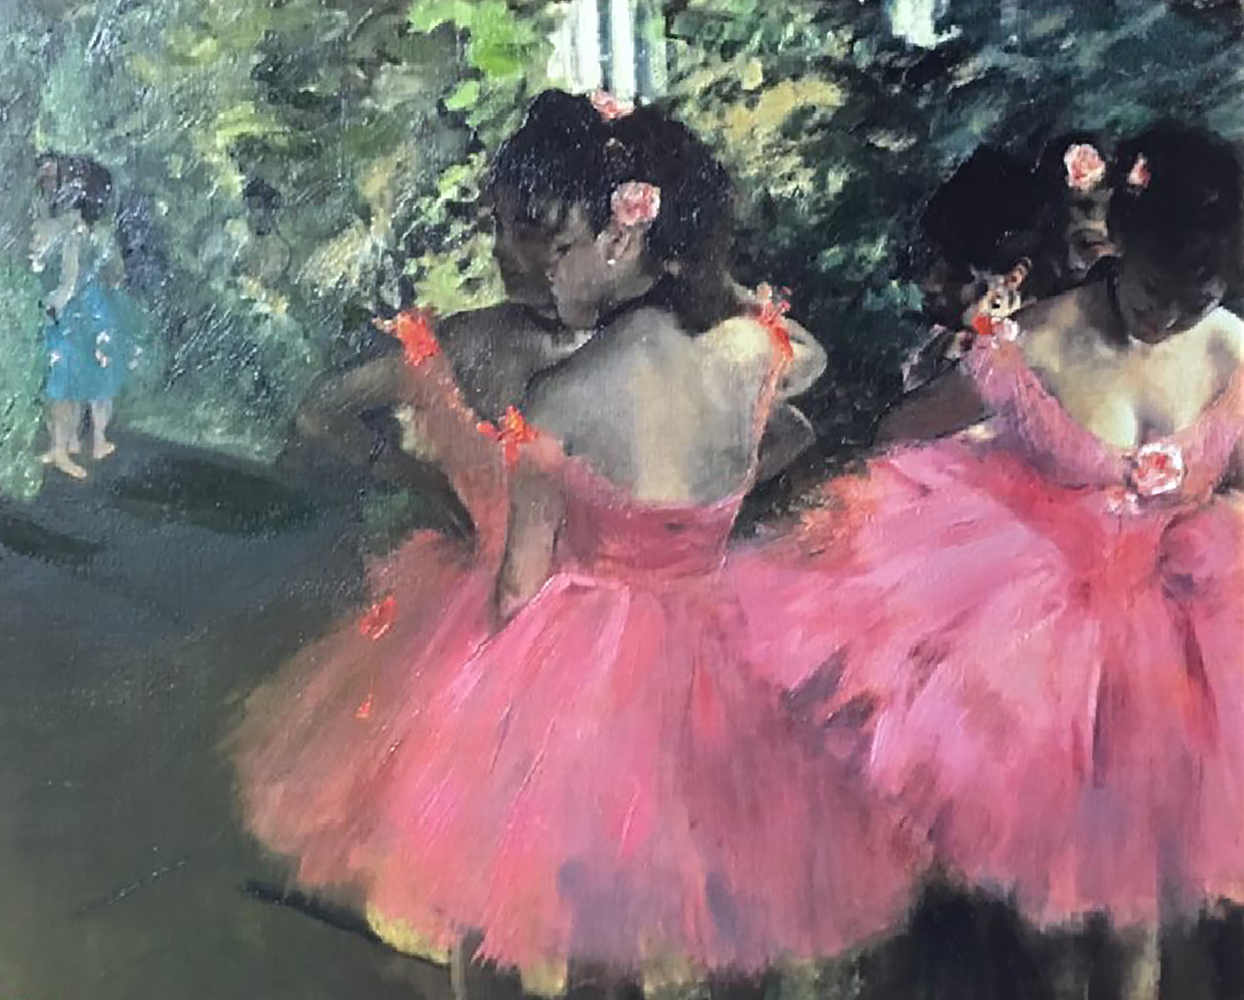 Dancers-in-Pink_Degas_24x30_altered